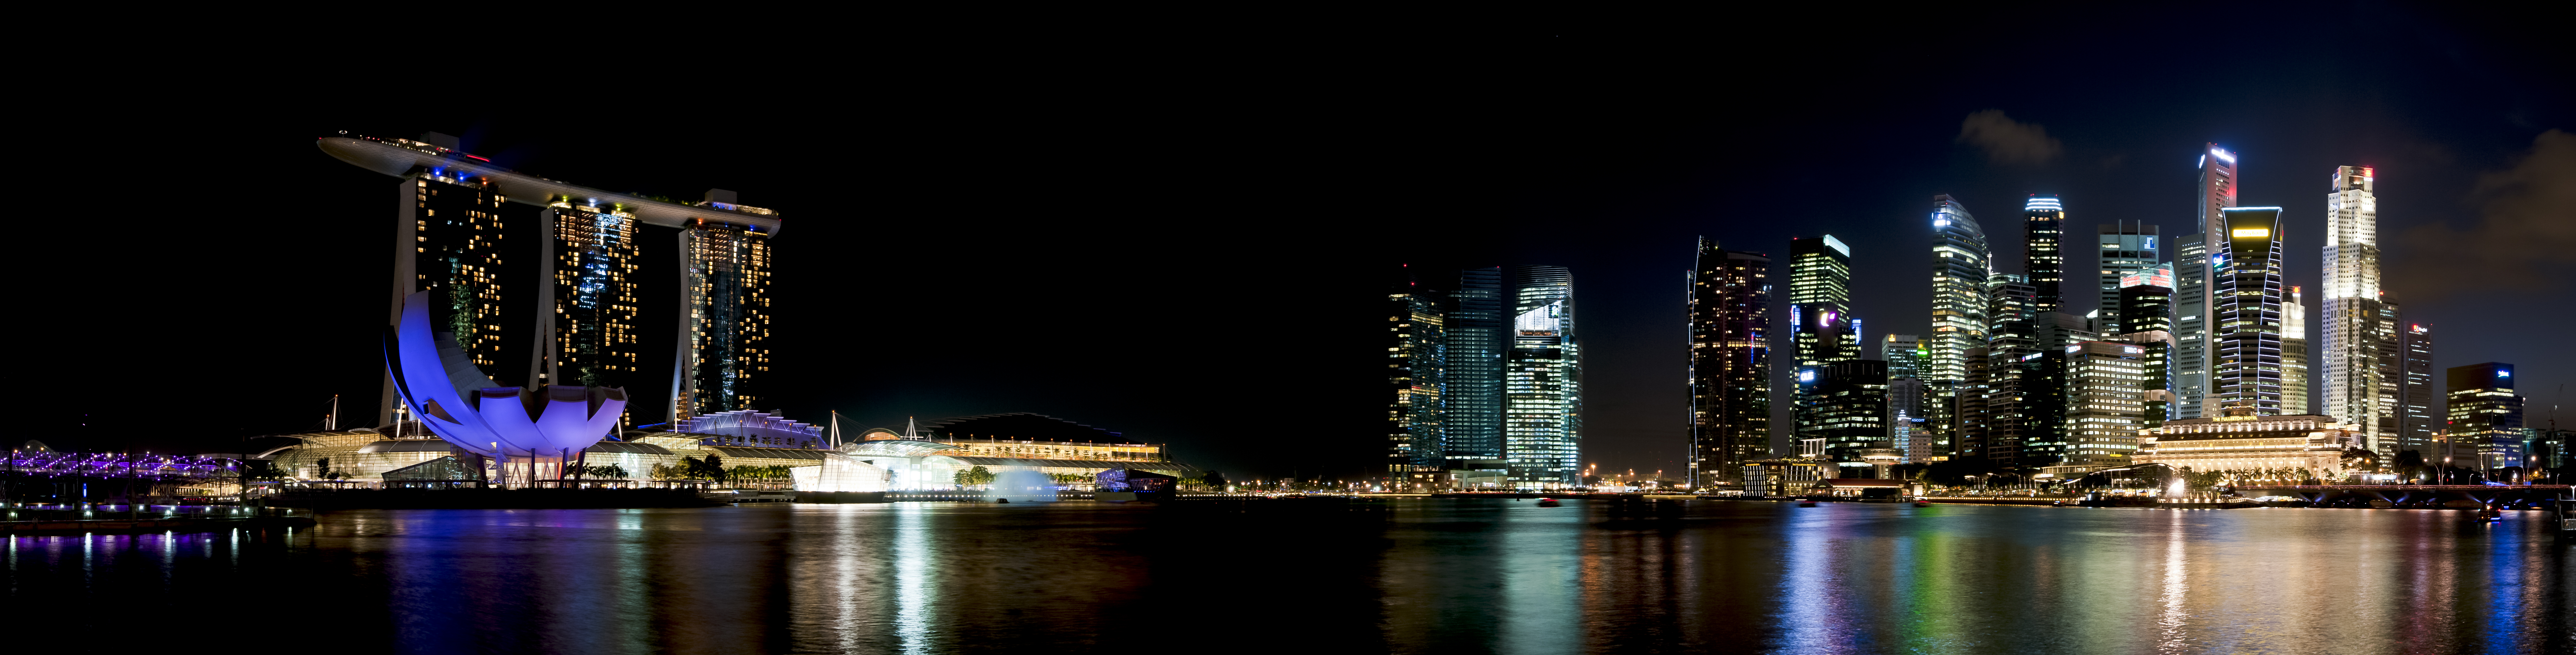 5 major facts about singapore that every singaporean should understand the influencer media - Singapur skyline pool ...